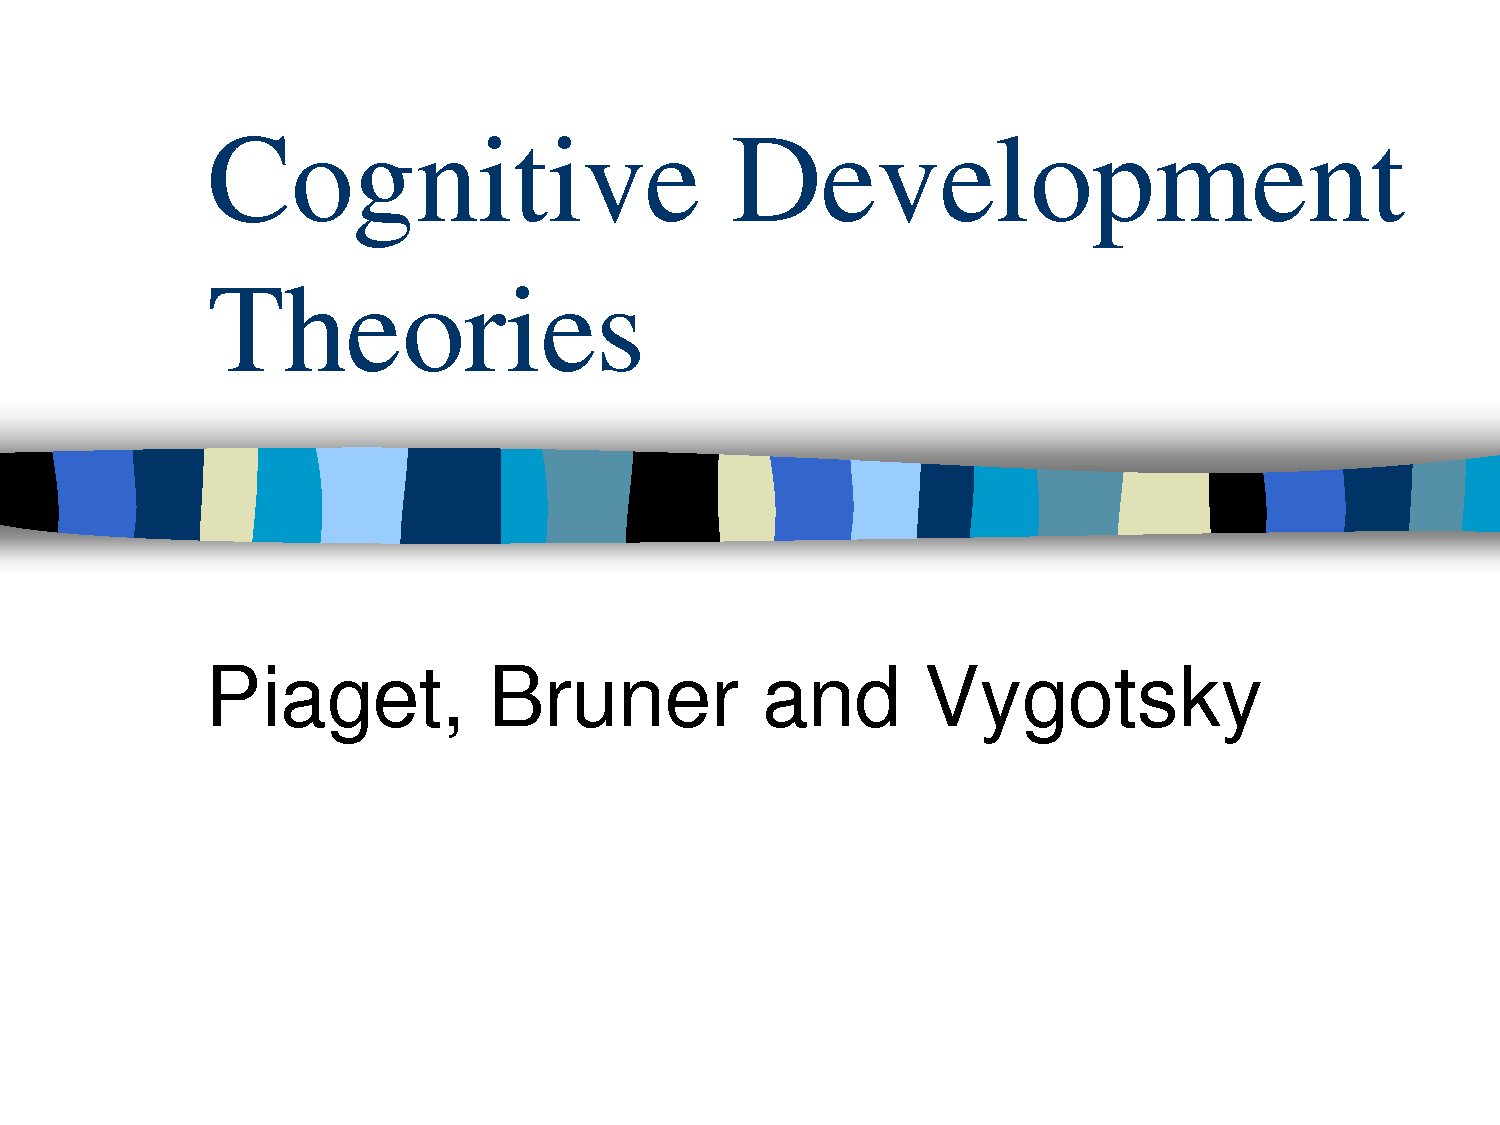 Vygotsky Theory of Cognitive Development